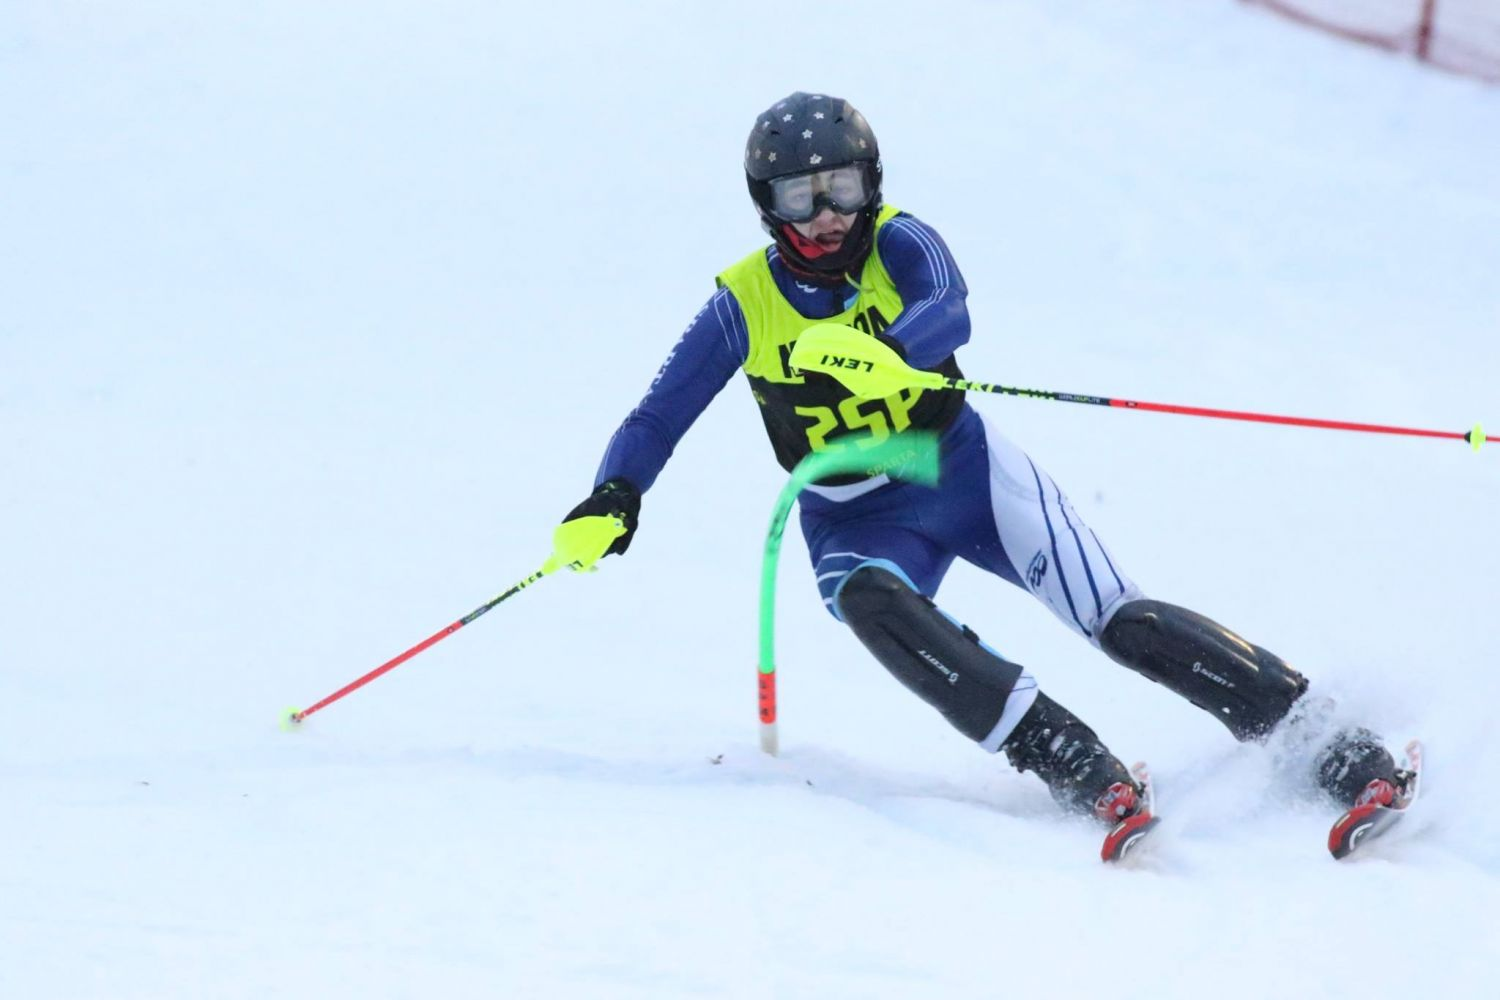 Connor - Slalom Race #2